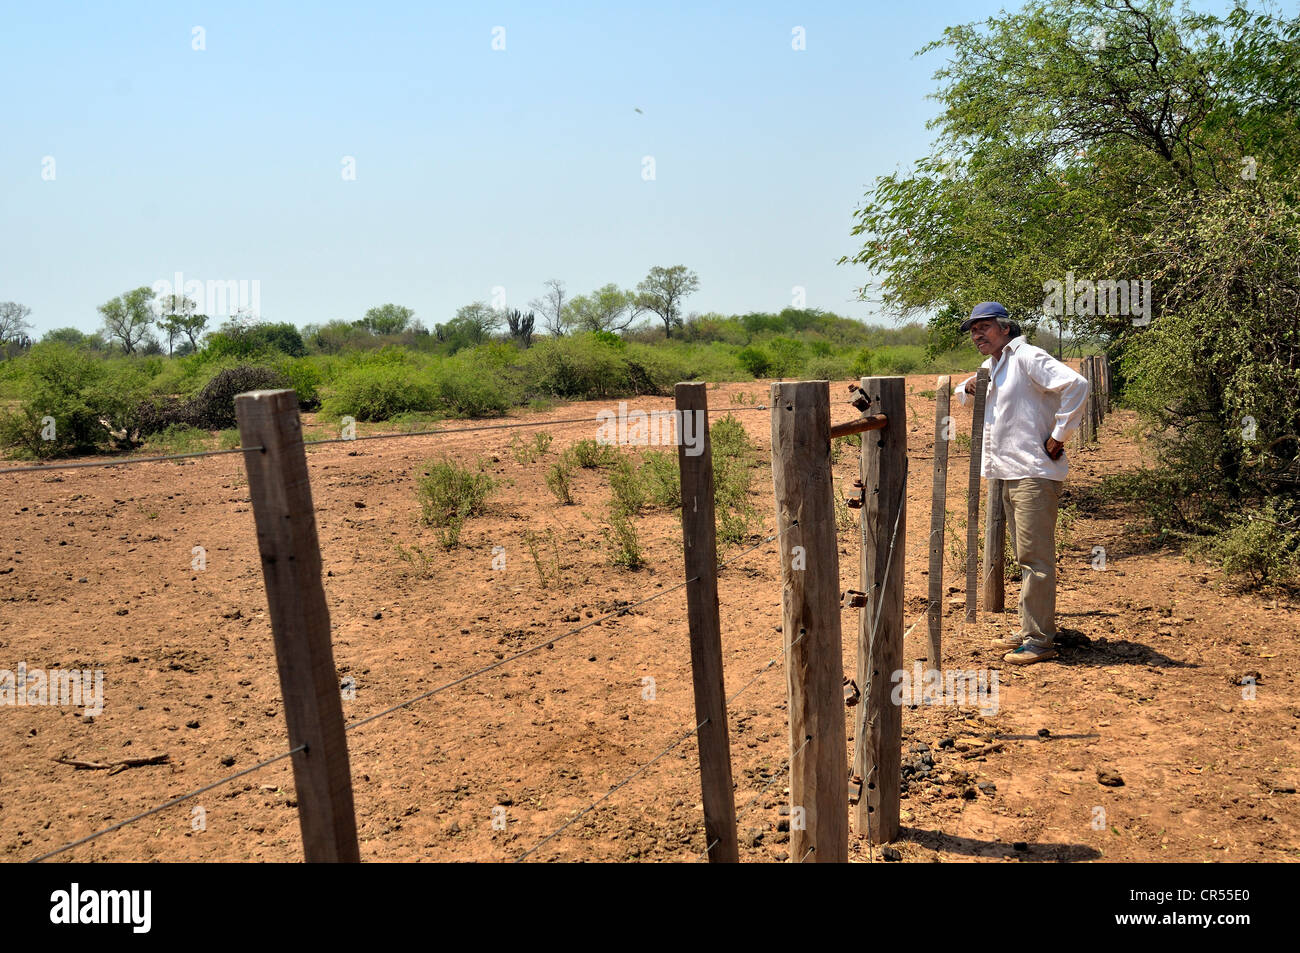 Land grabbing, major landowners have fenced off the land that once constituted the habitat of the Wichi Indians - Stock Image